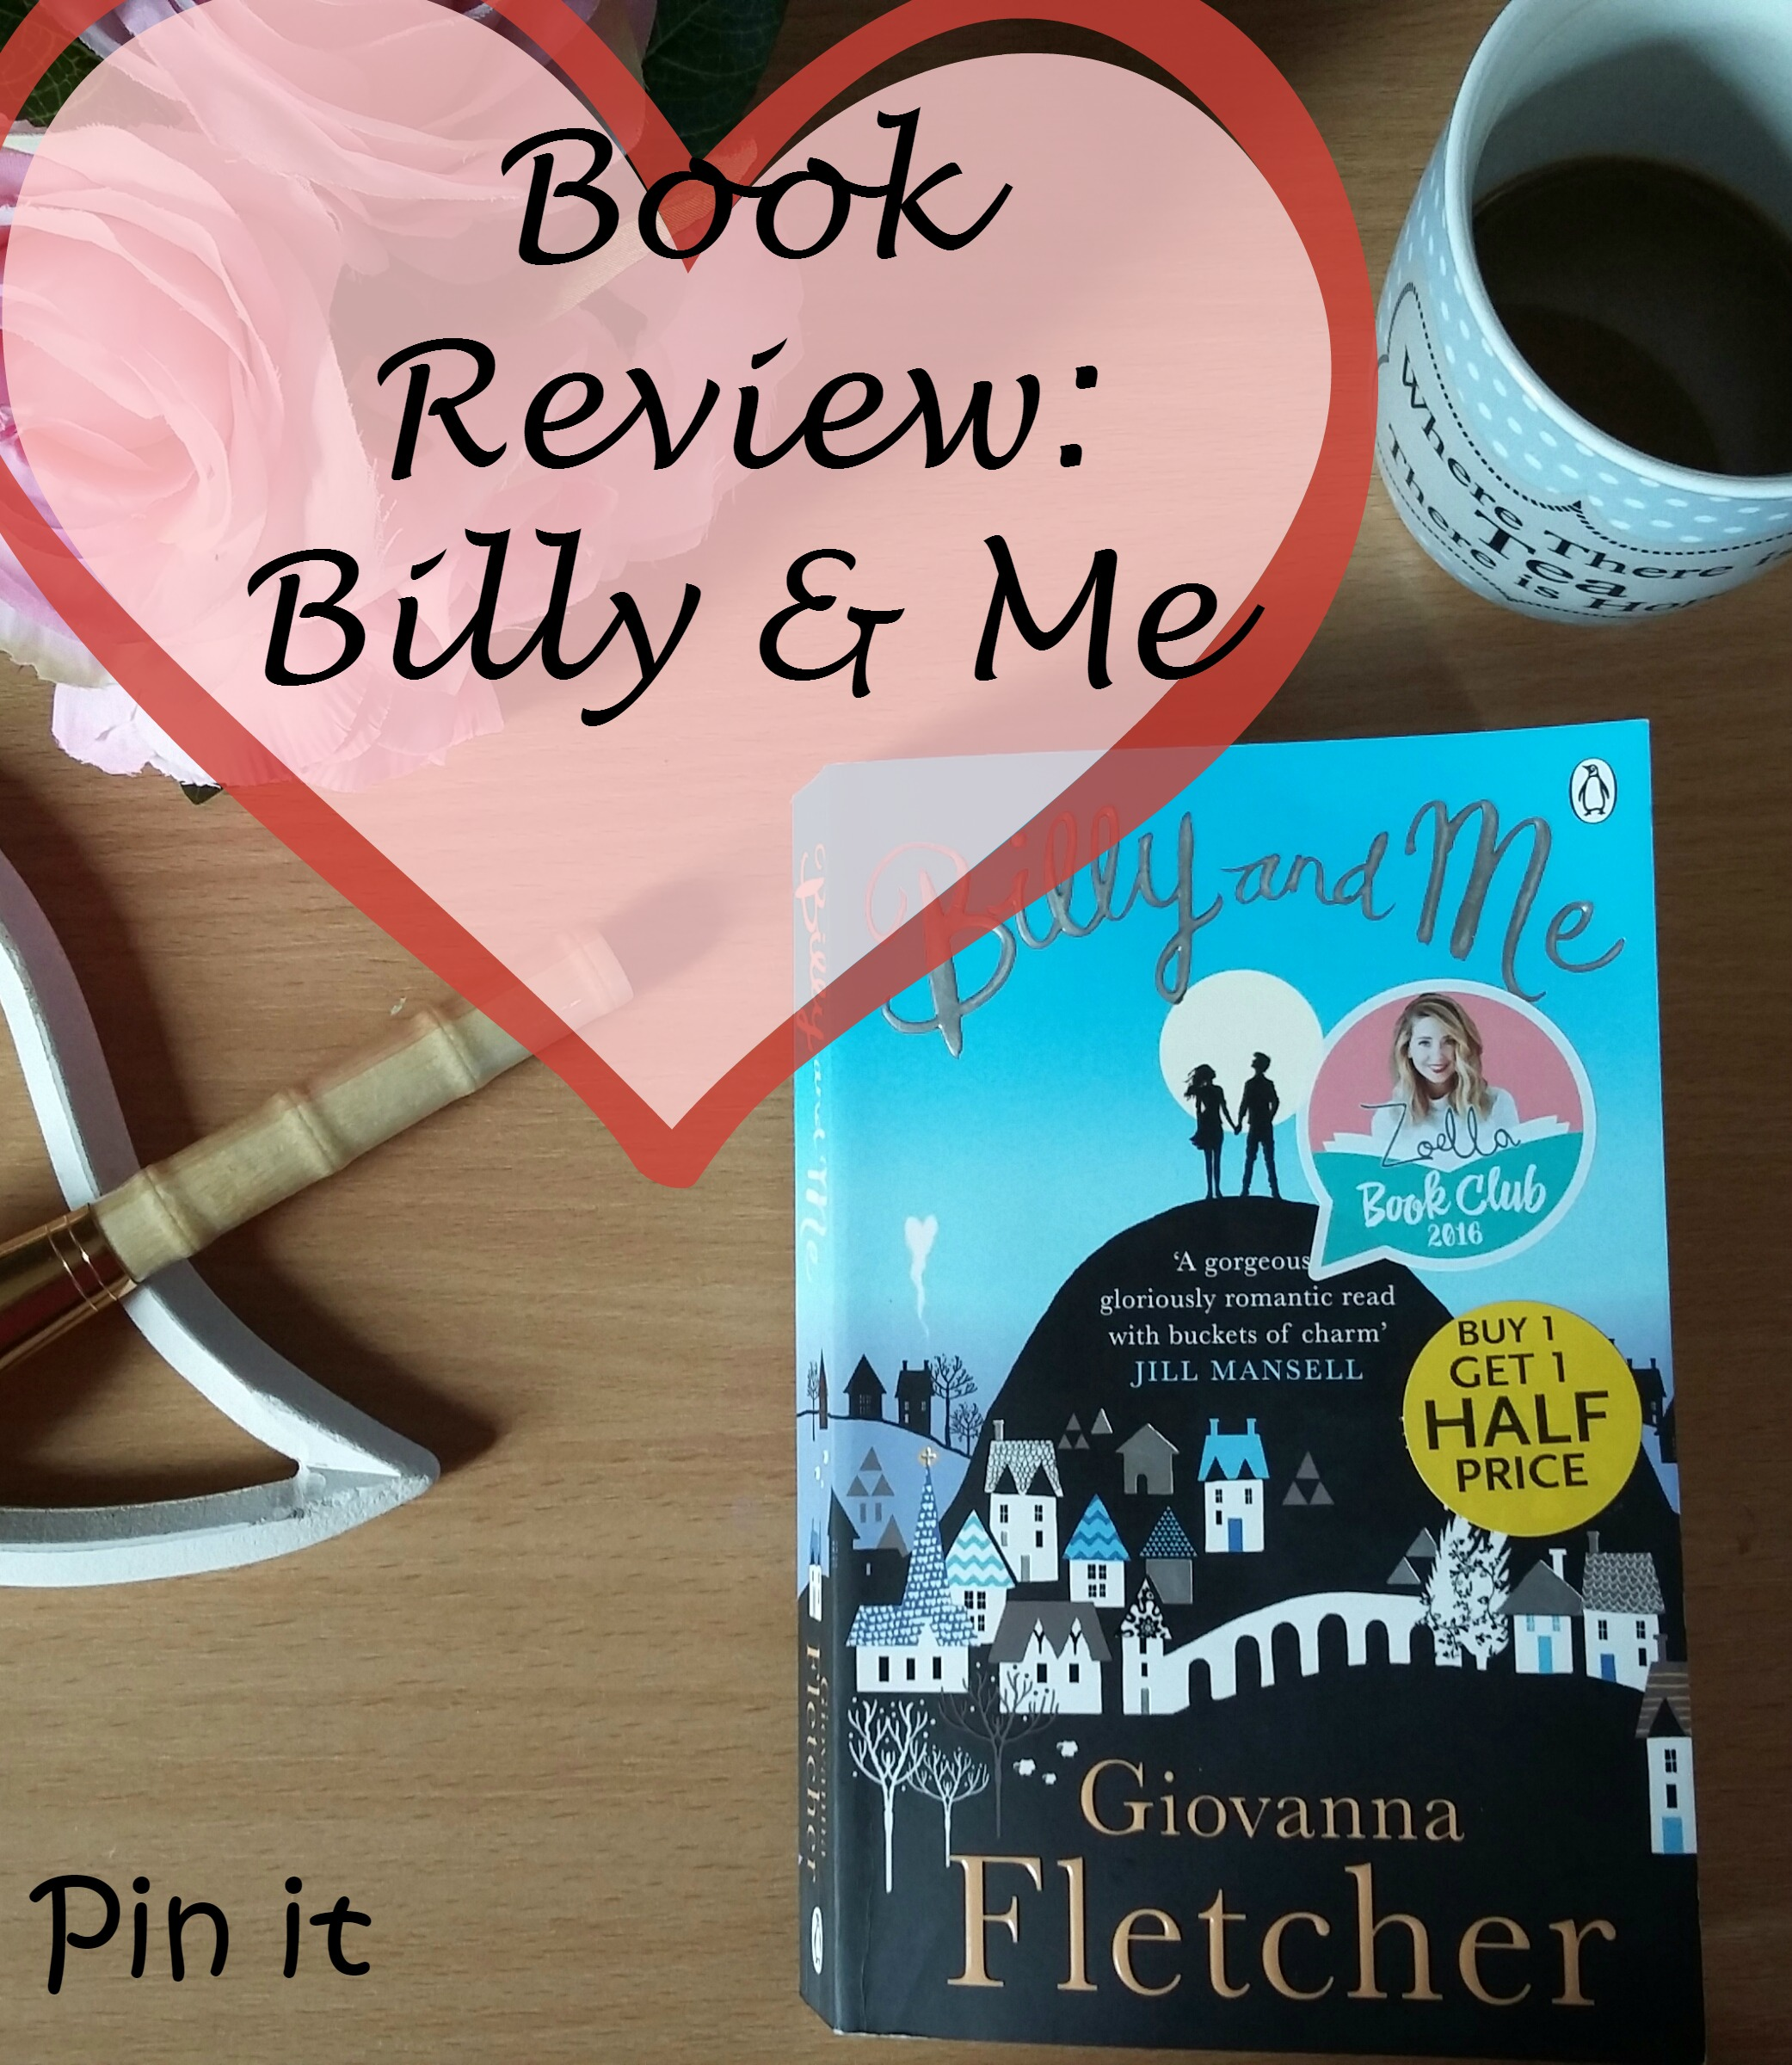 Book Review Billy and me.jpg